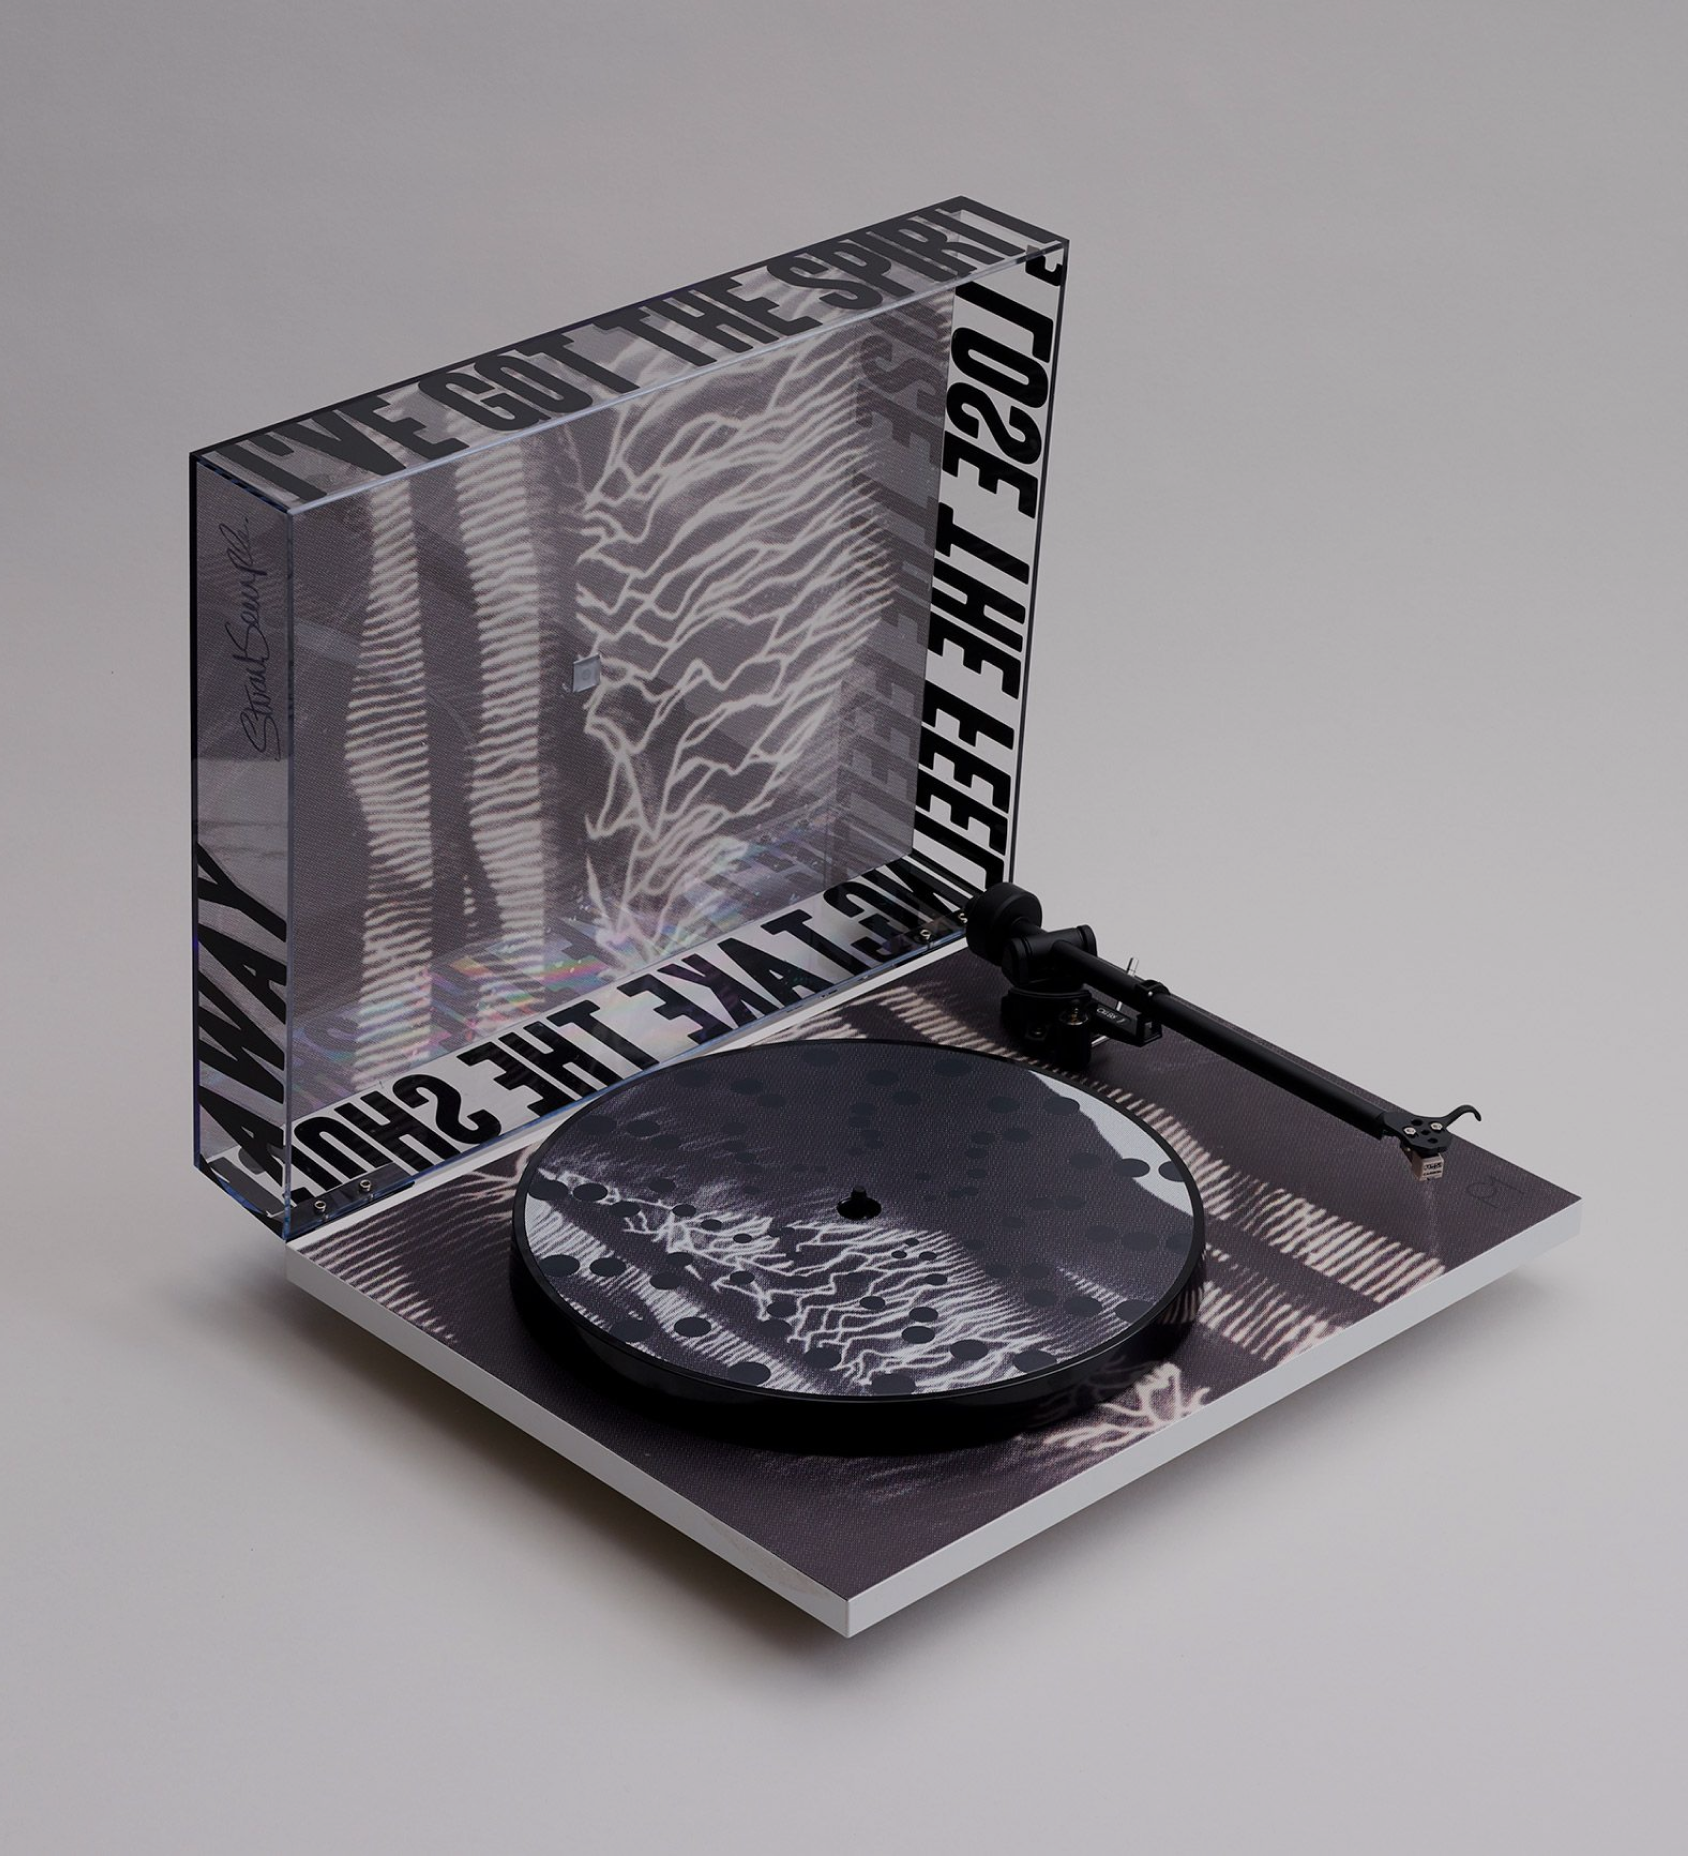 A record player with a dark grungy design